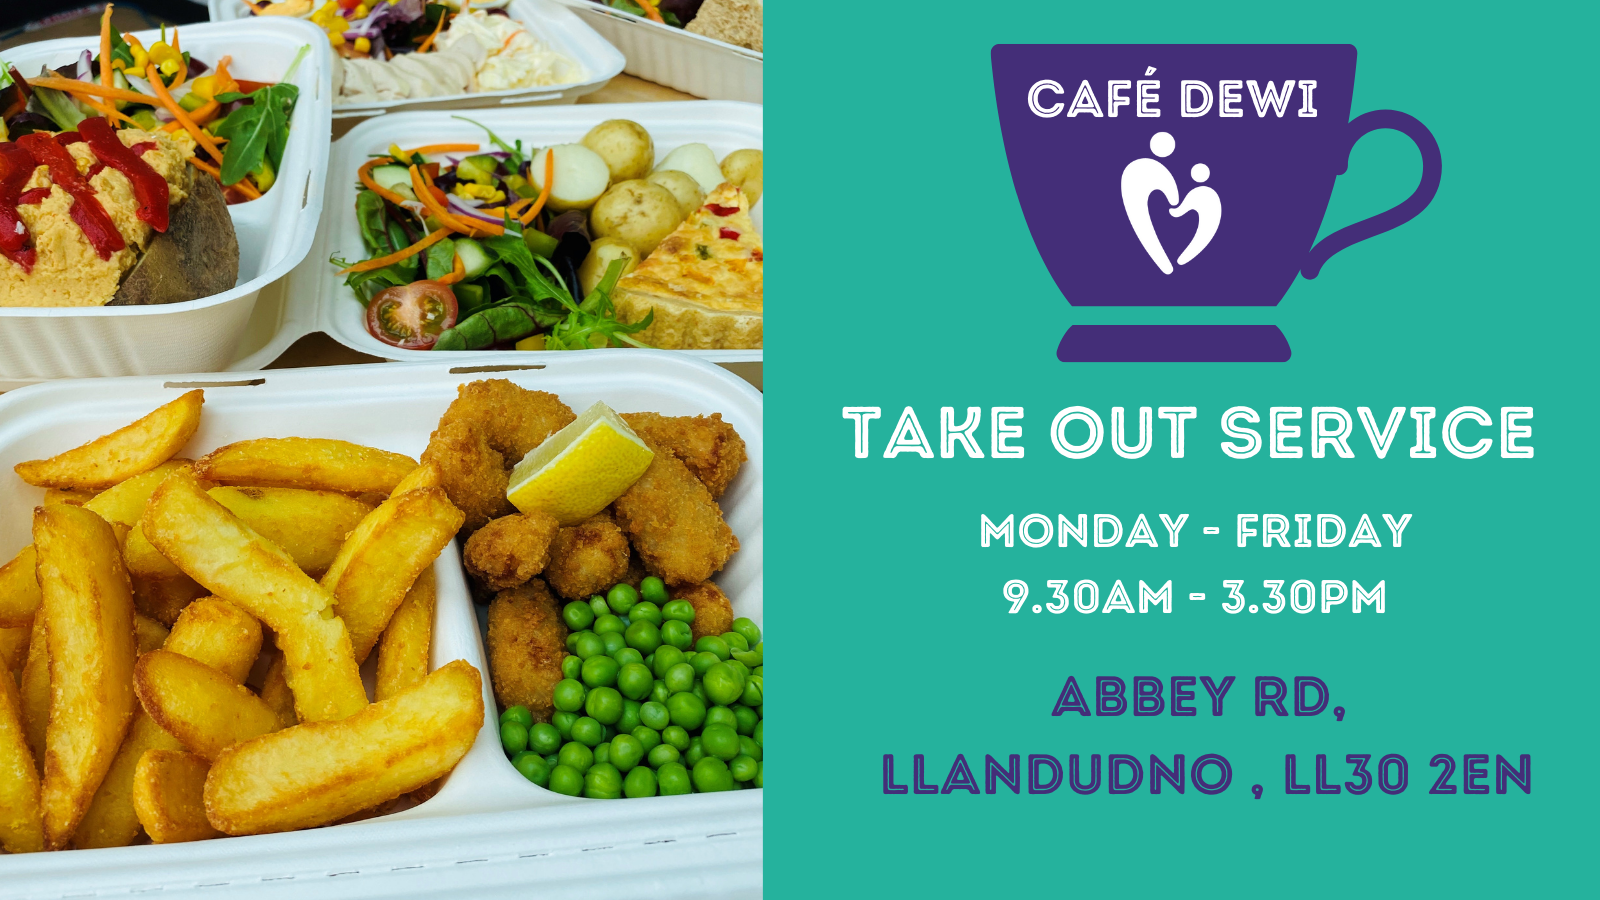 Take Out Service Available at Café Dewi, located at St David's Hospice Llandudno.